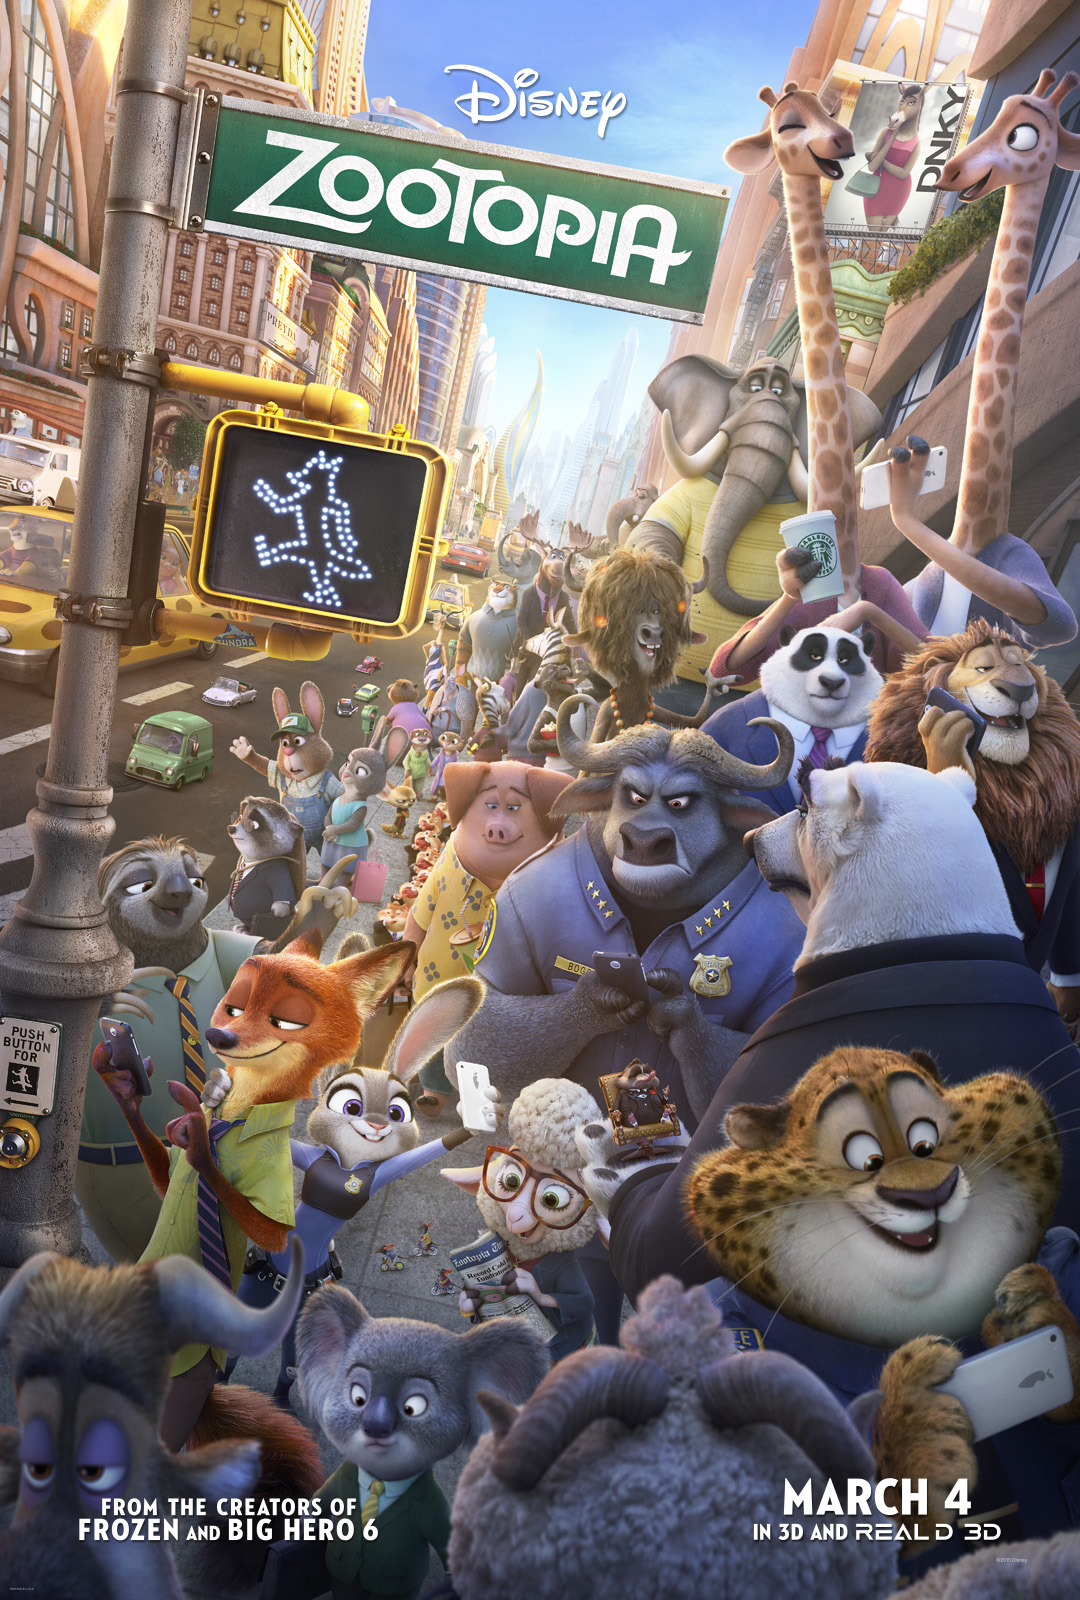 Zootopia opens March 4 2016